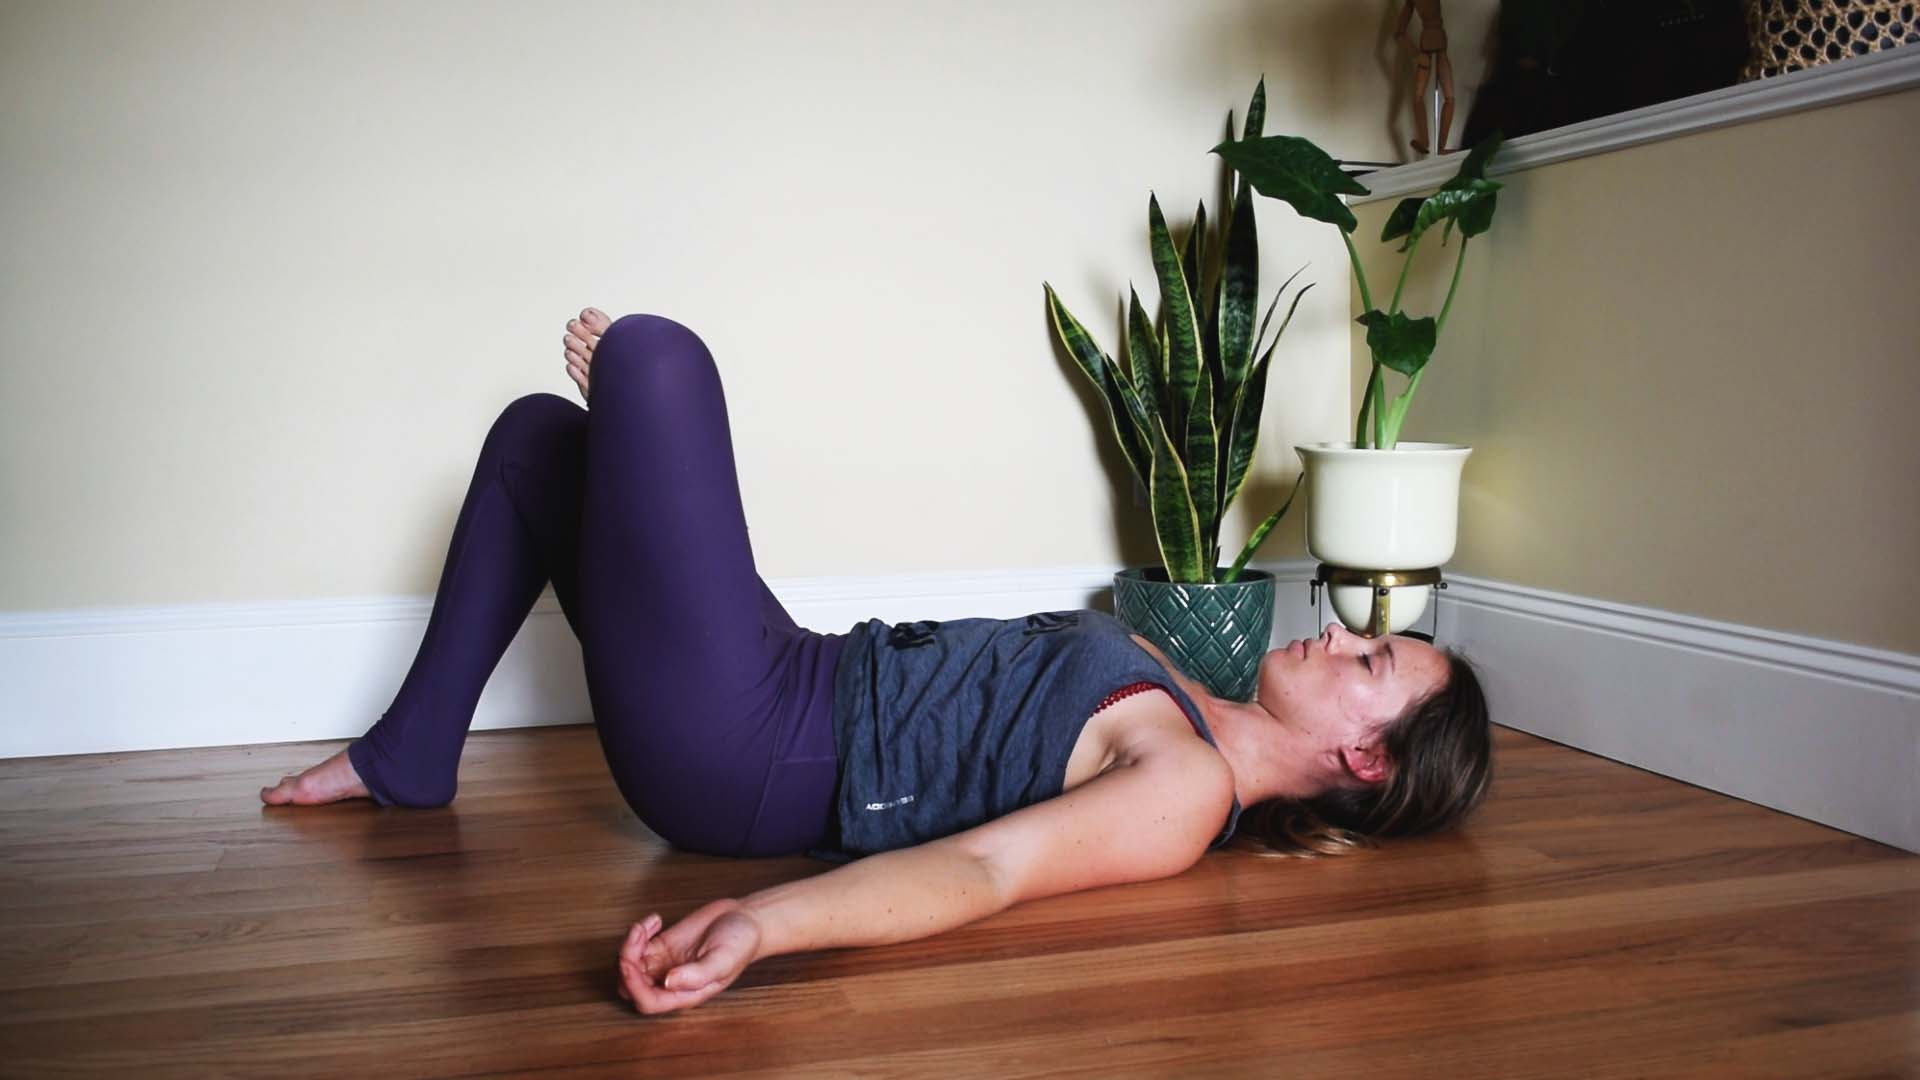 6. Counter-balance Long Hours of Travel - Do you ever have lower back or shoulder pain after a lot of traveling? If so, you are not alone. It is quite common! Here are three GREAT seated stretches to bring some balance back into your body:A) Figure Four [photo'd]B) Cat/CowC) Knees to chest.